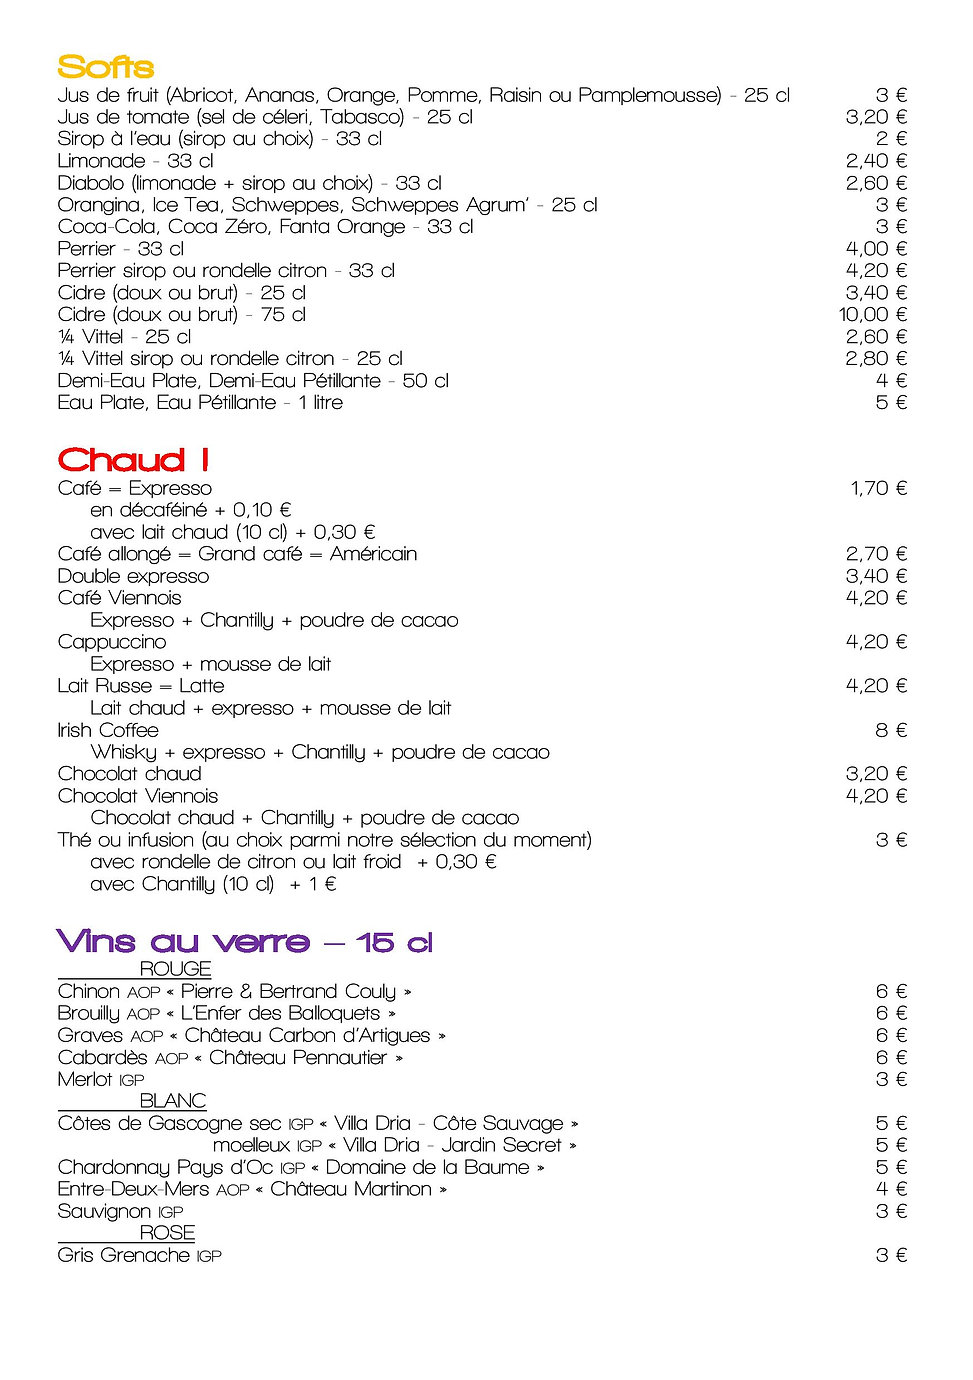 Afternoon verso A5 (boissons et vins)-page-002 (1).jpg